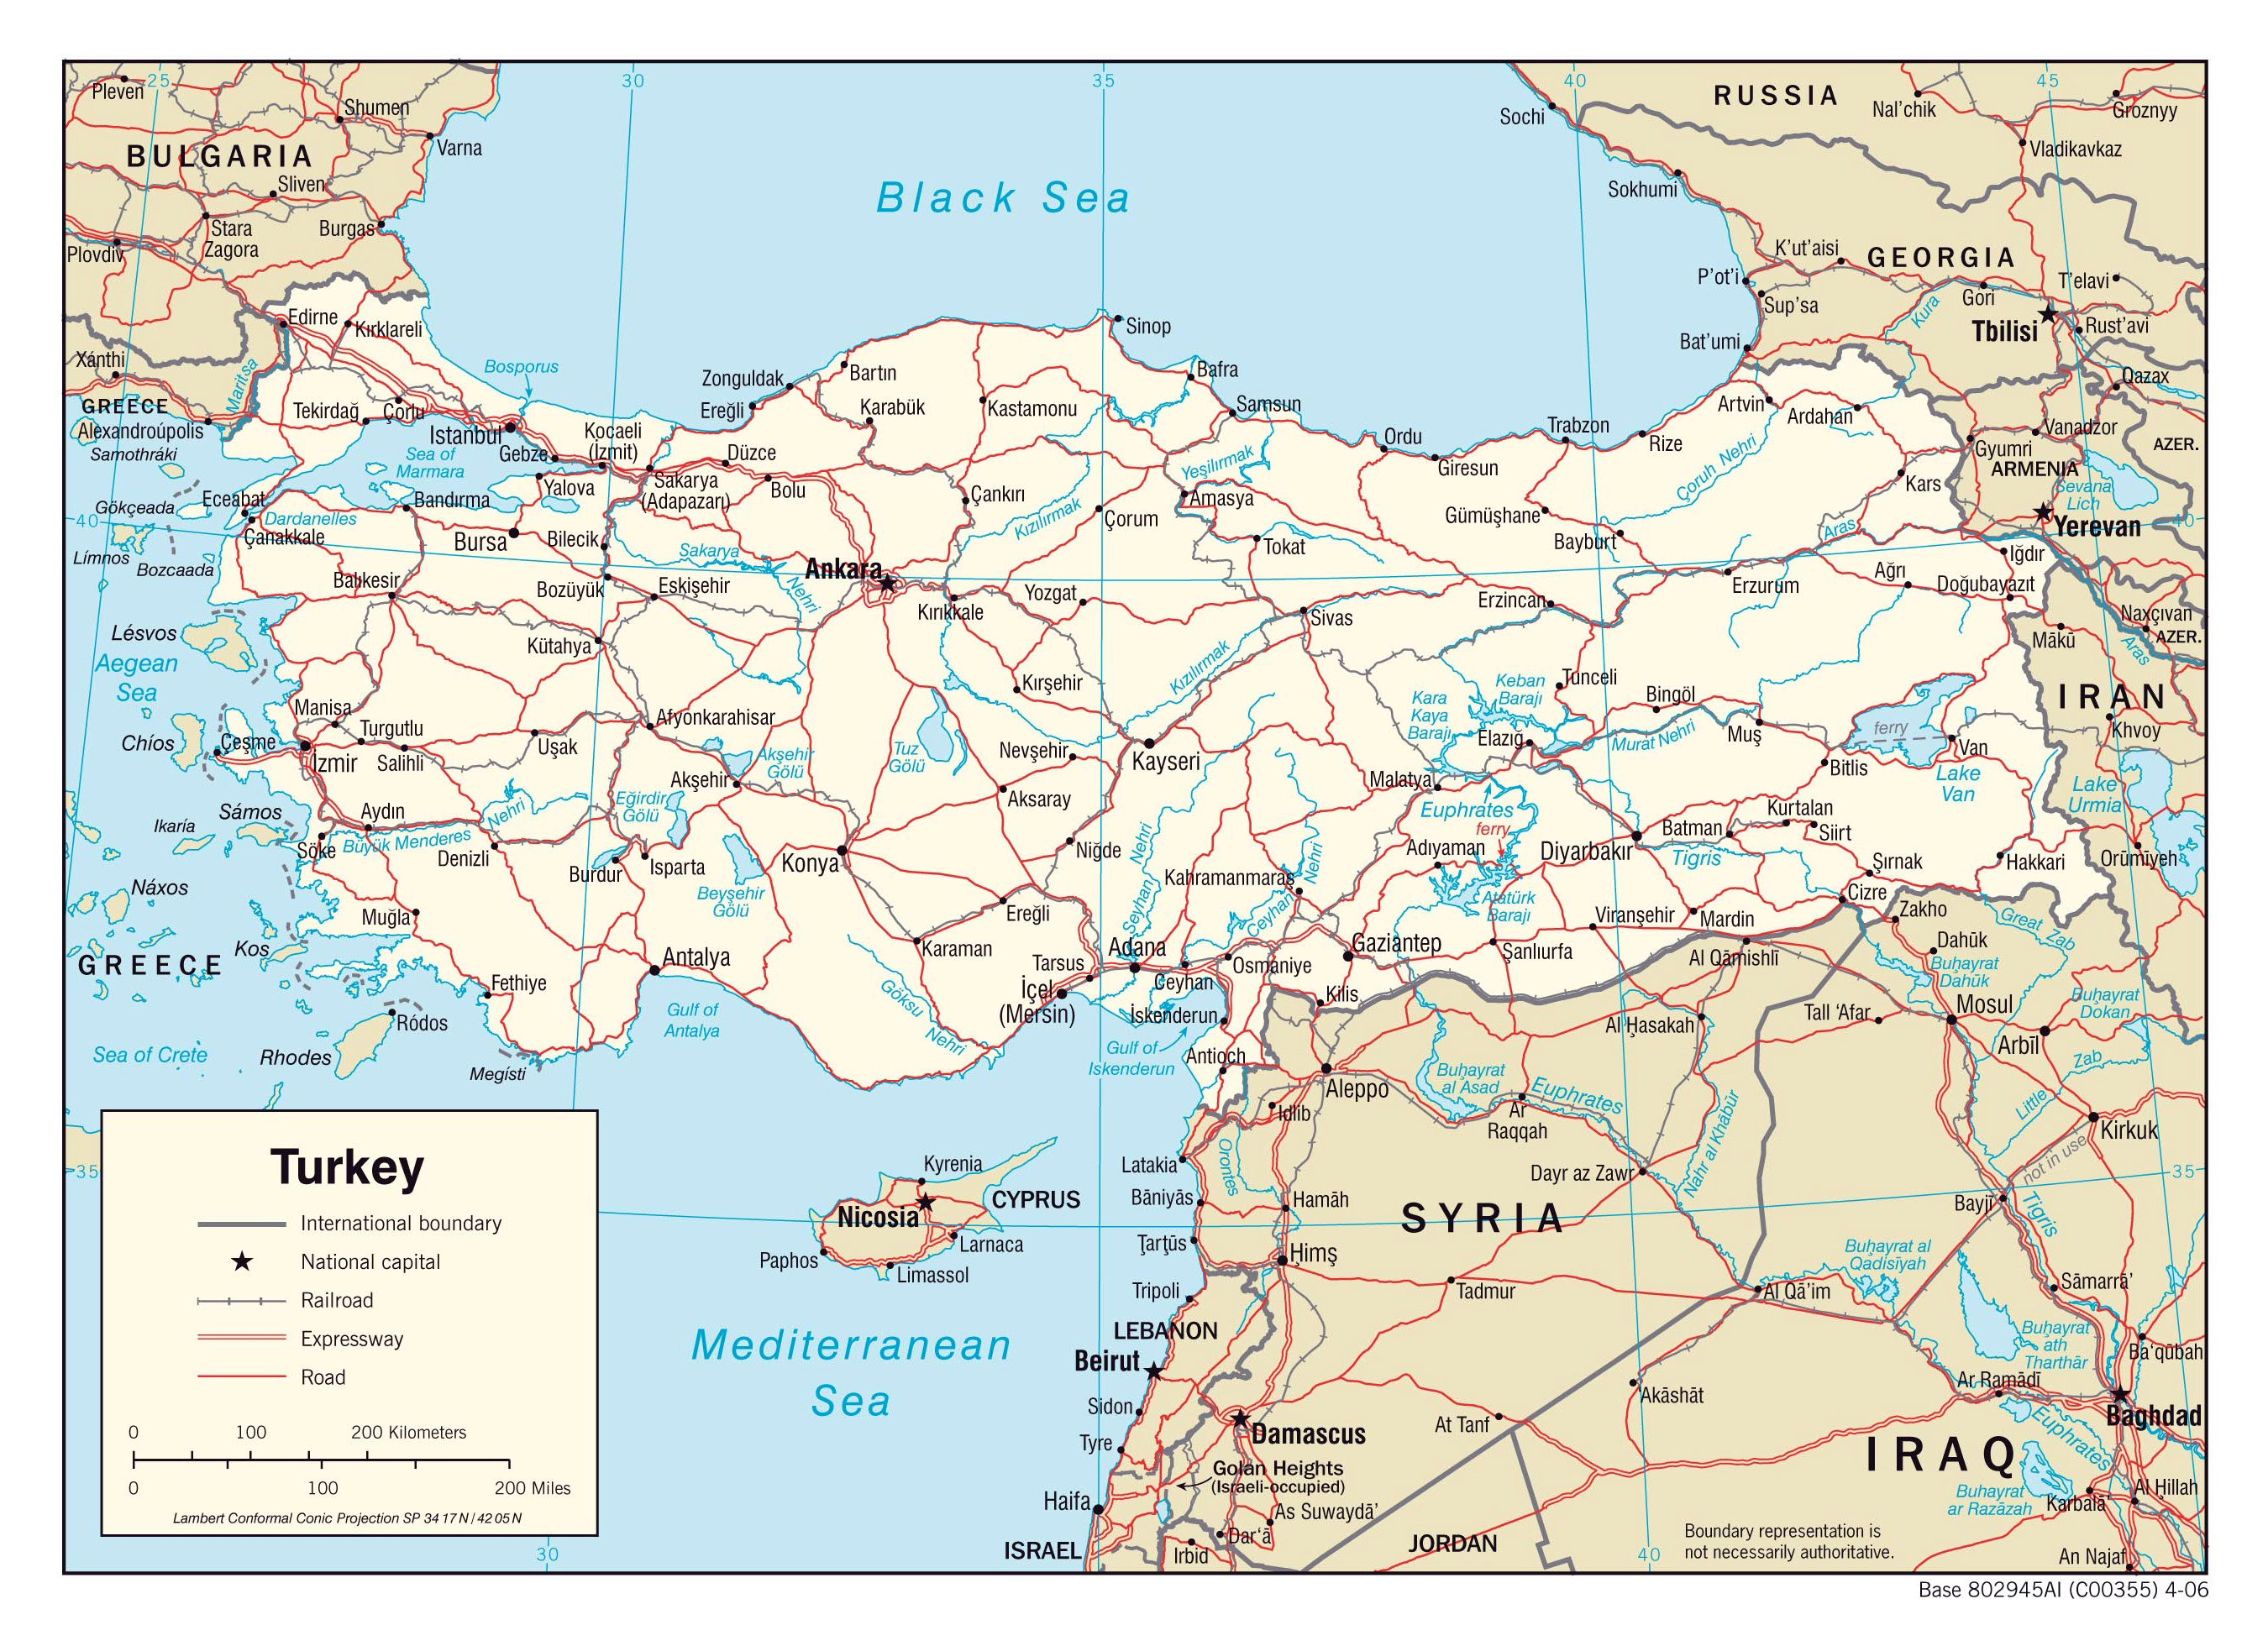 Maps of Turkey | Detailed map of Turkey in English | Tourist ... Map In Turkey on uzbekistan in map, cook islands in map, south sudan in map, easter islands in map, jordan in map, bahrain in map, troy in map, mauritania in map, togo in map, czech republic in map, cappadocia in map, antioch in map, andorra in map, luxembourg in map, turkmenistan in map, brunei in map, saudi arabia in map, saint lucia in map, djibouti in map, fertile crescent in map,